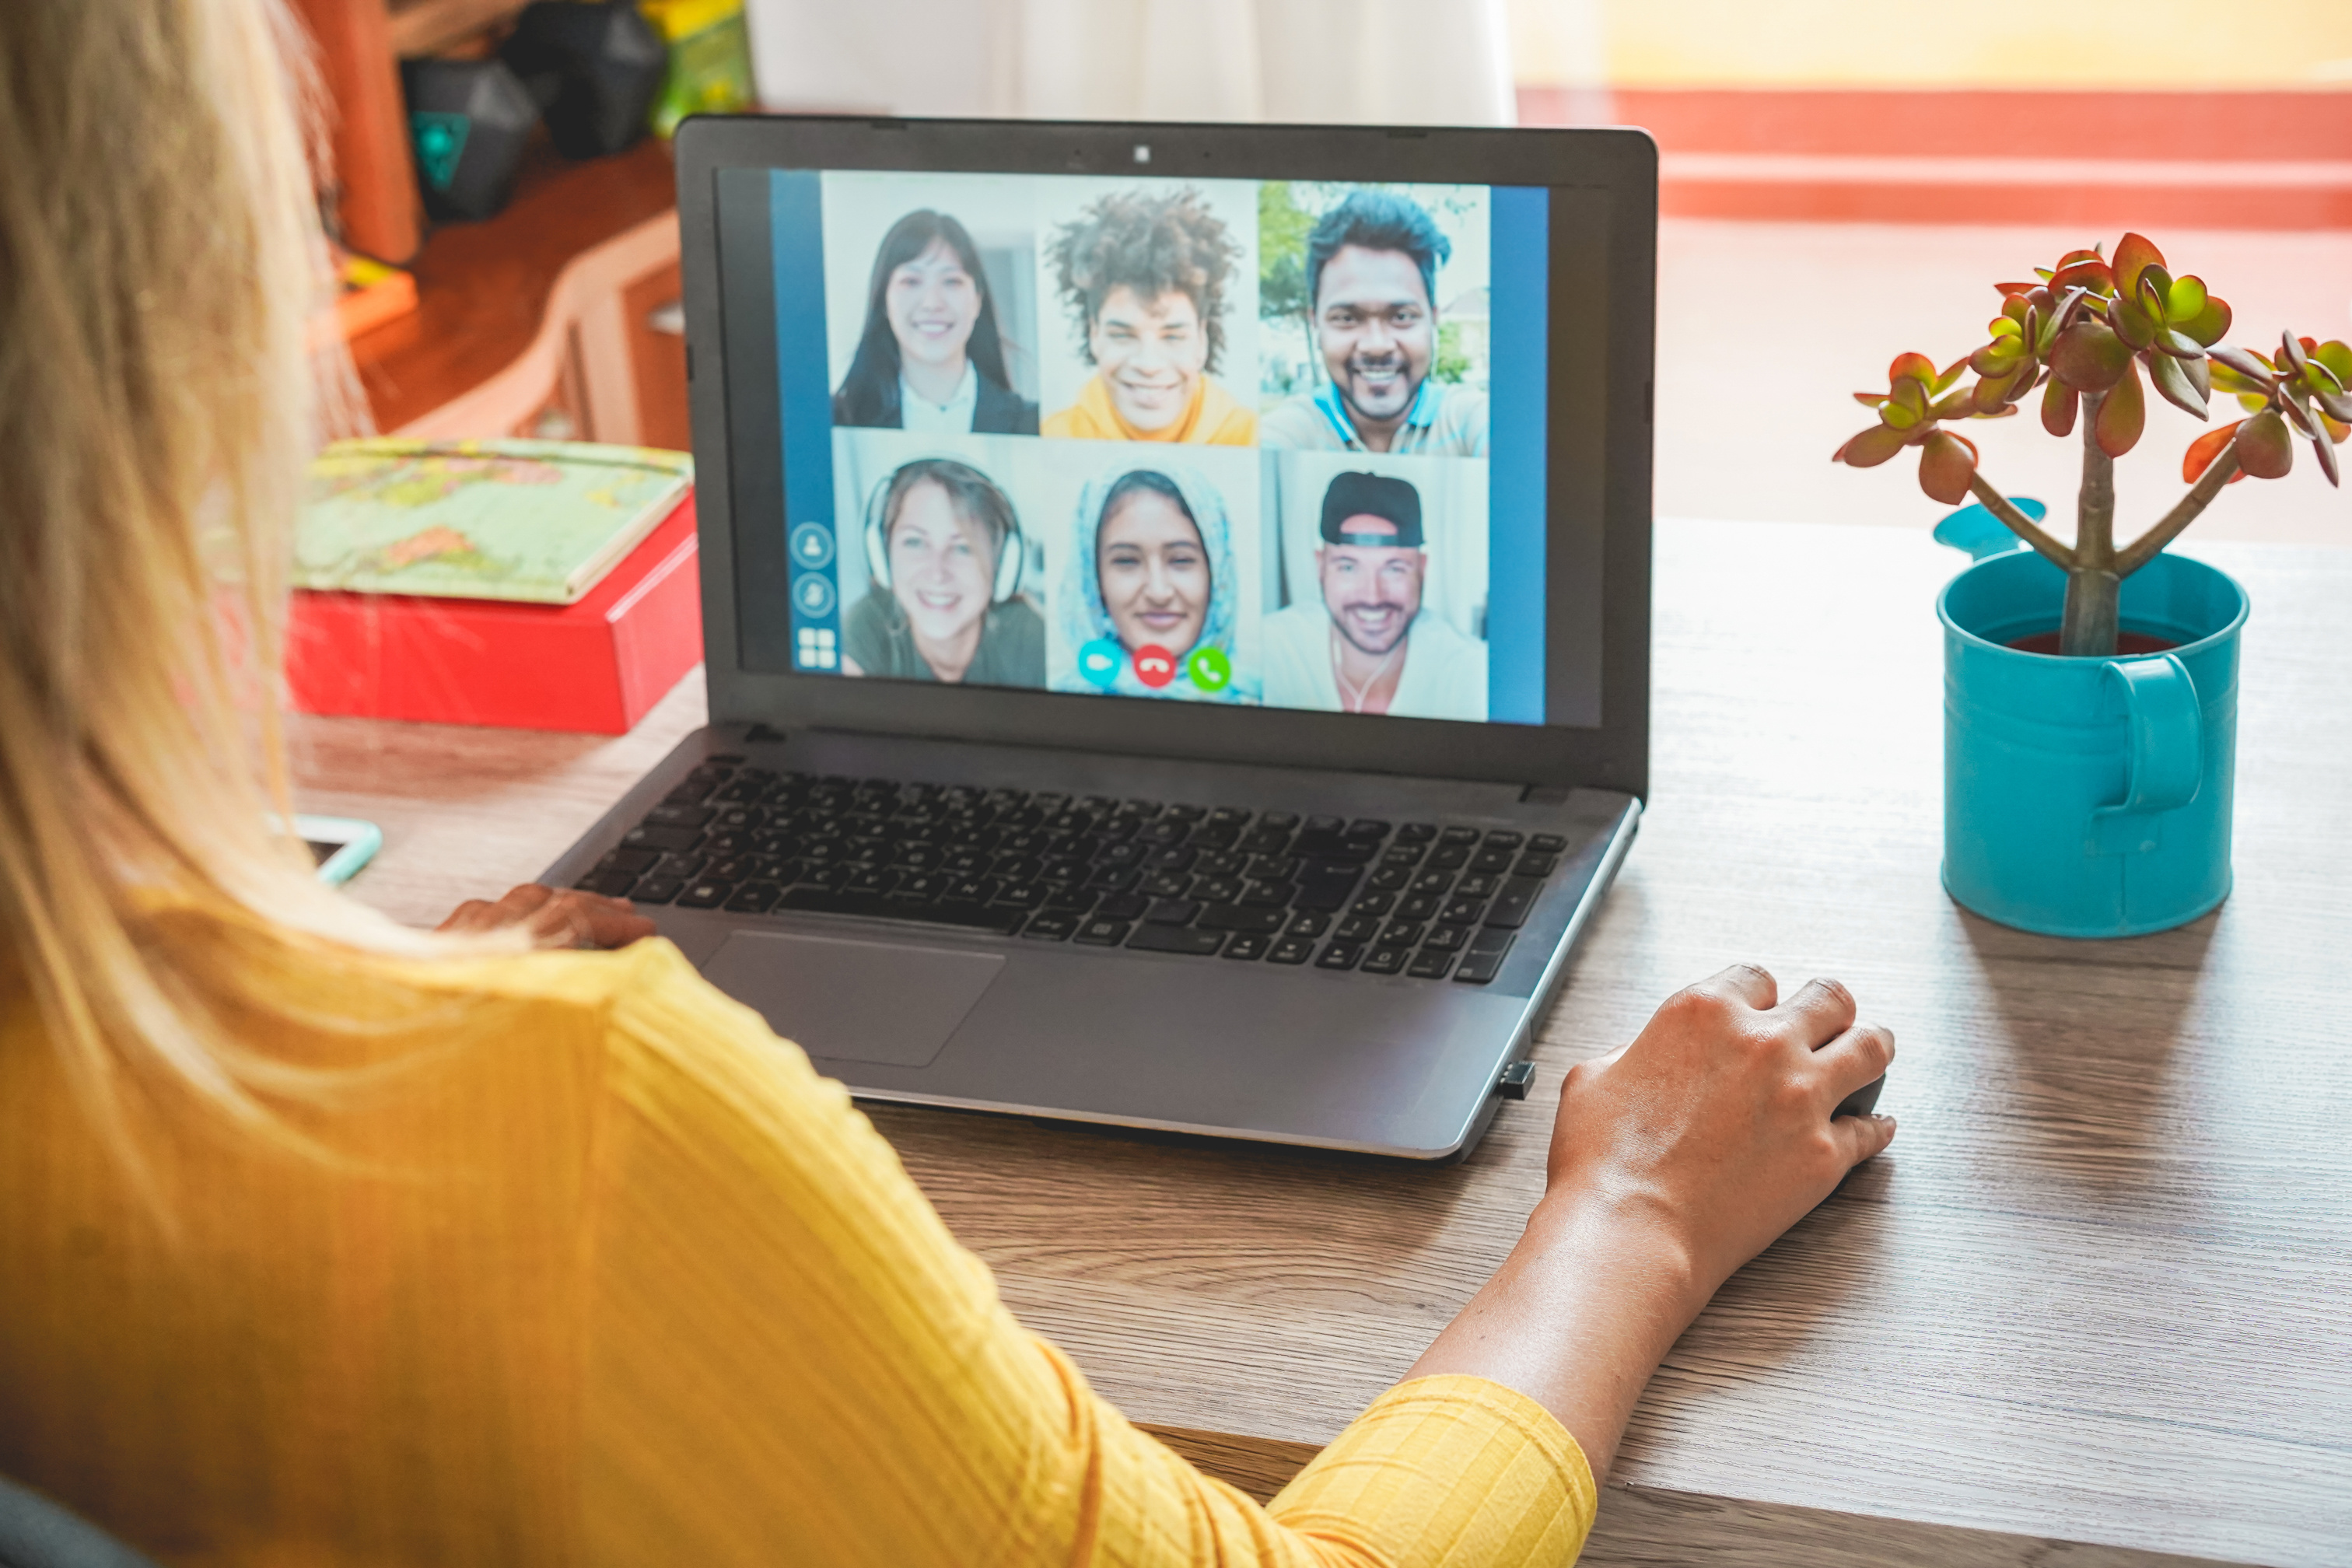 Virtual team social ideas to stay connected